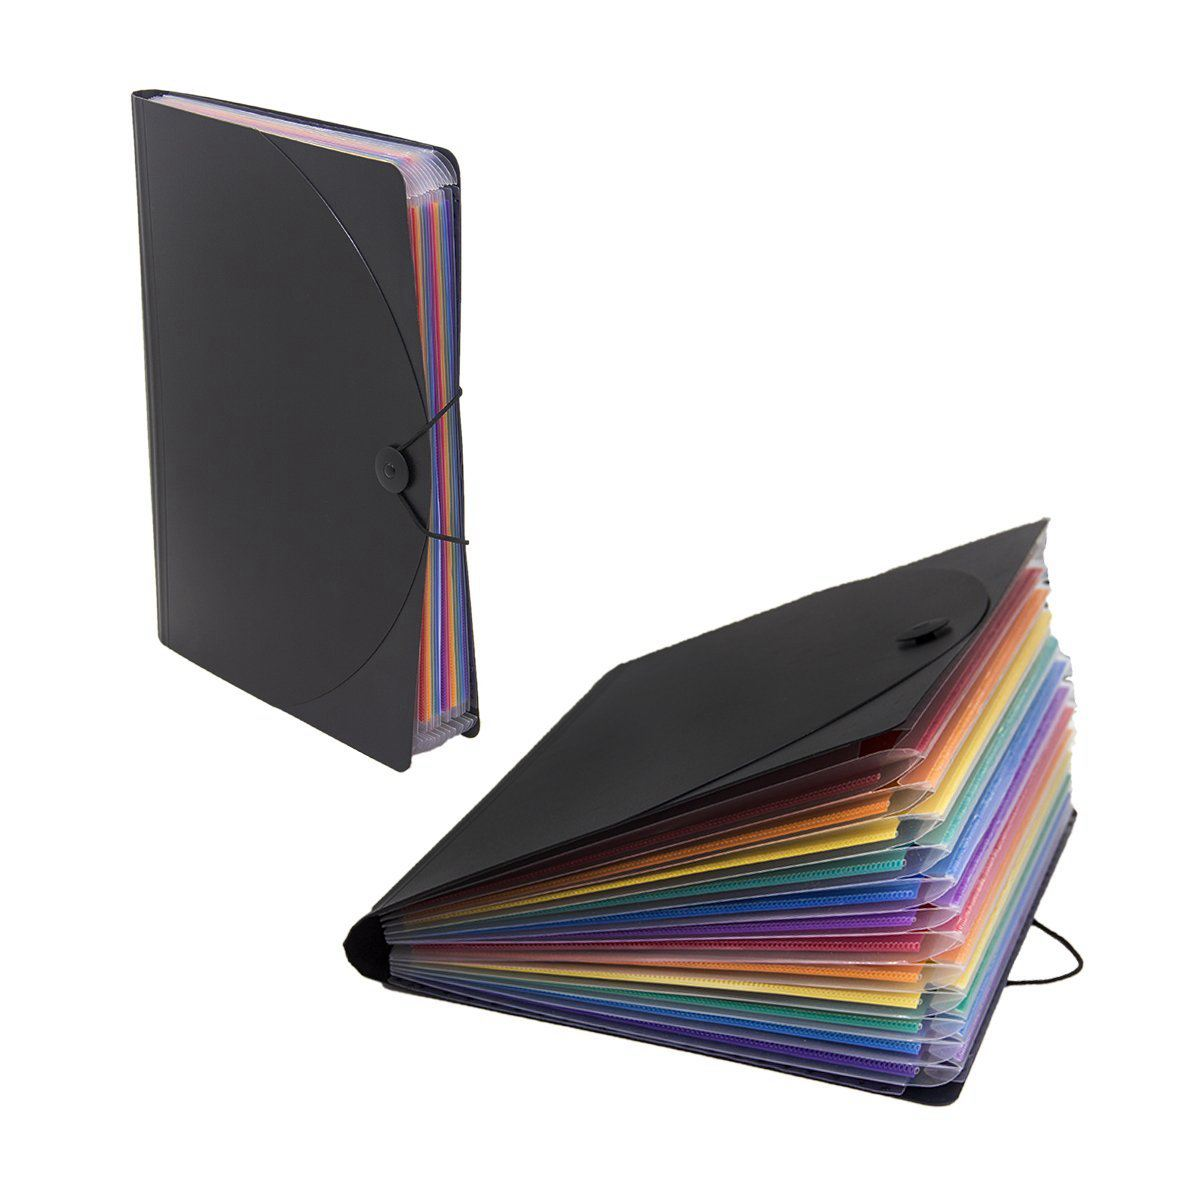 12 Pocket Expanding Files Folder/ A4 Expandable File organizer/ Portable Accordion File Folder/ High Capacity Multicolour Stan high quality portable marble file folder a4 document bag examination paper organizer case expanding files